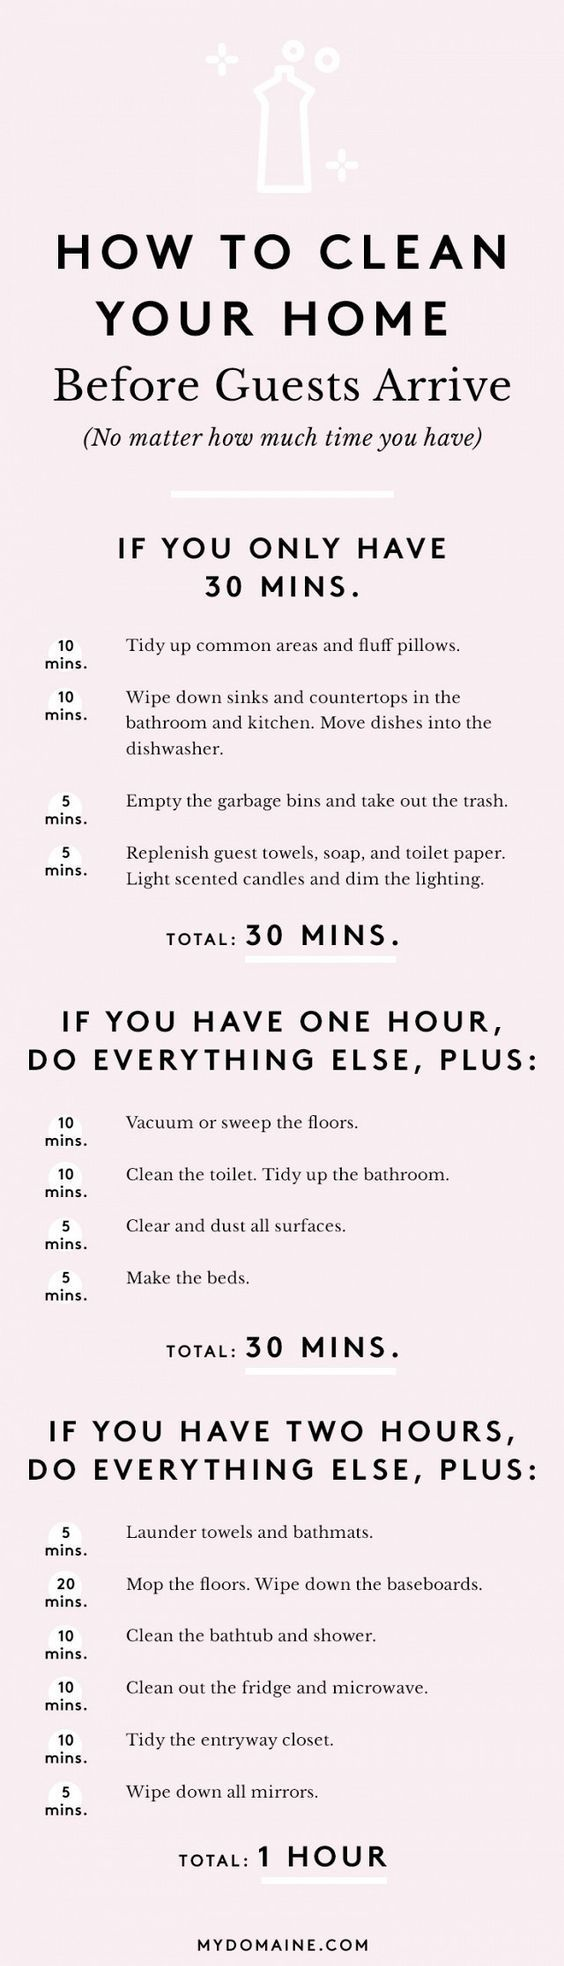 The Ultimate Guide to Cleaning Your Home in an Hour (because that's all we have!)